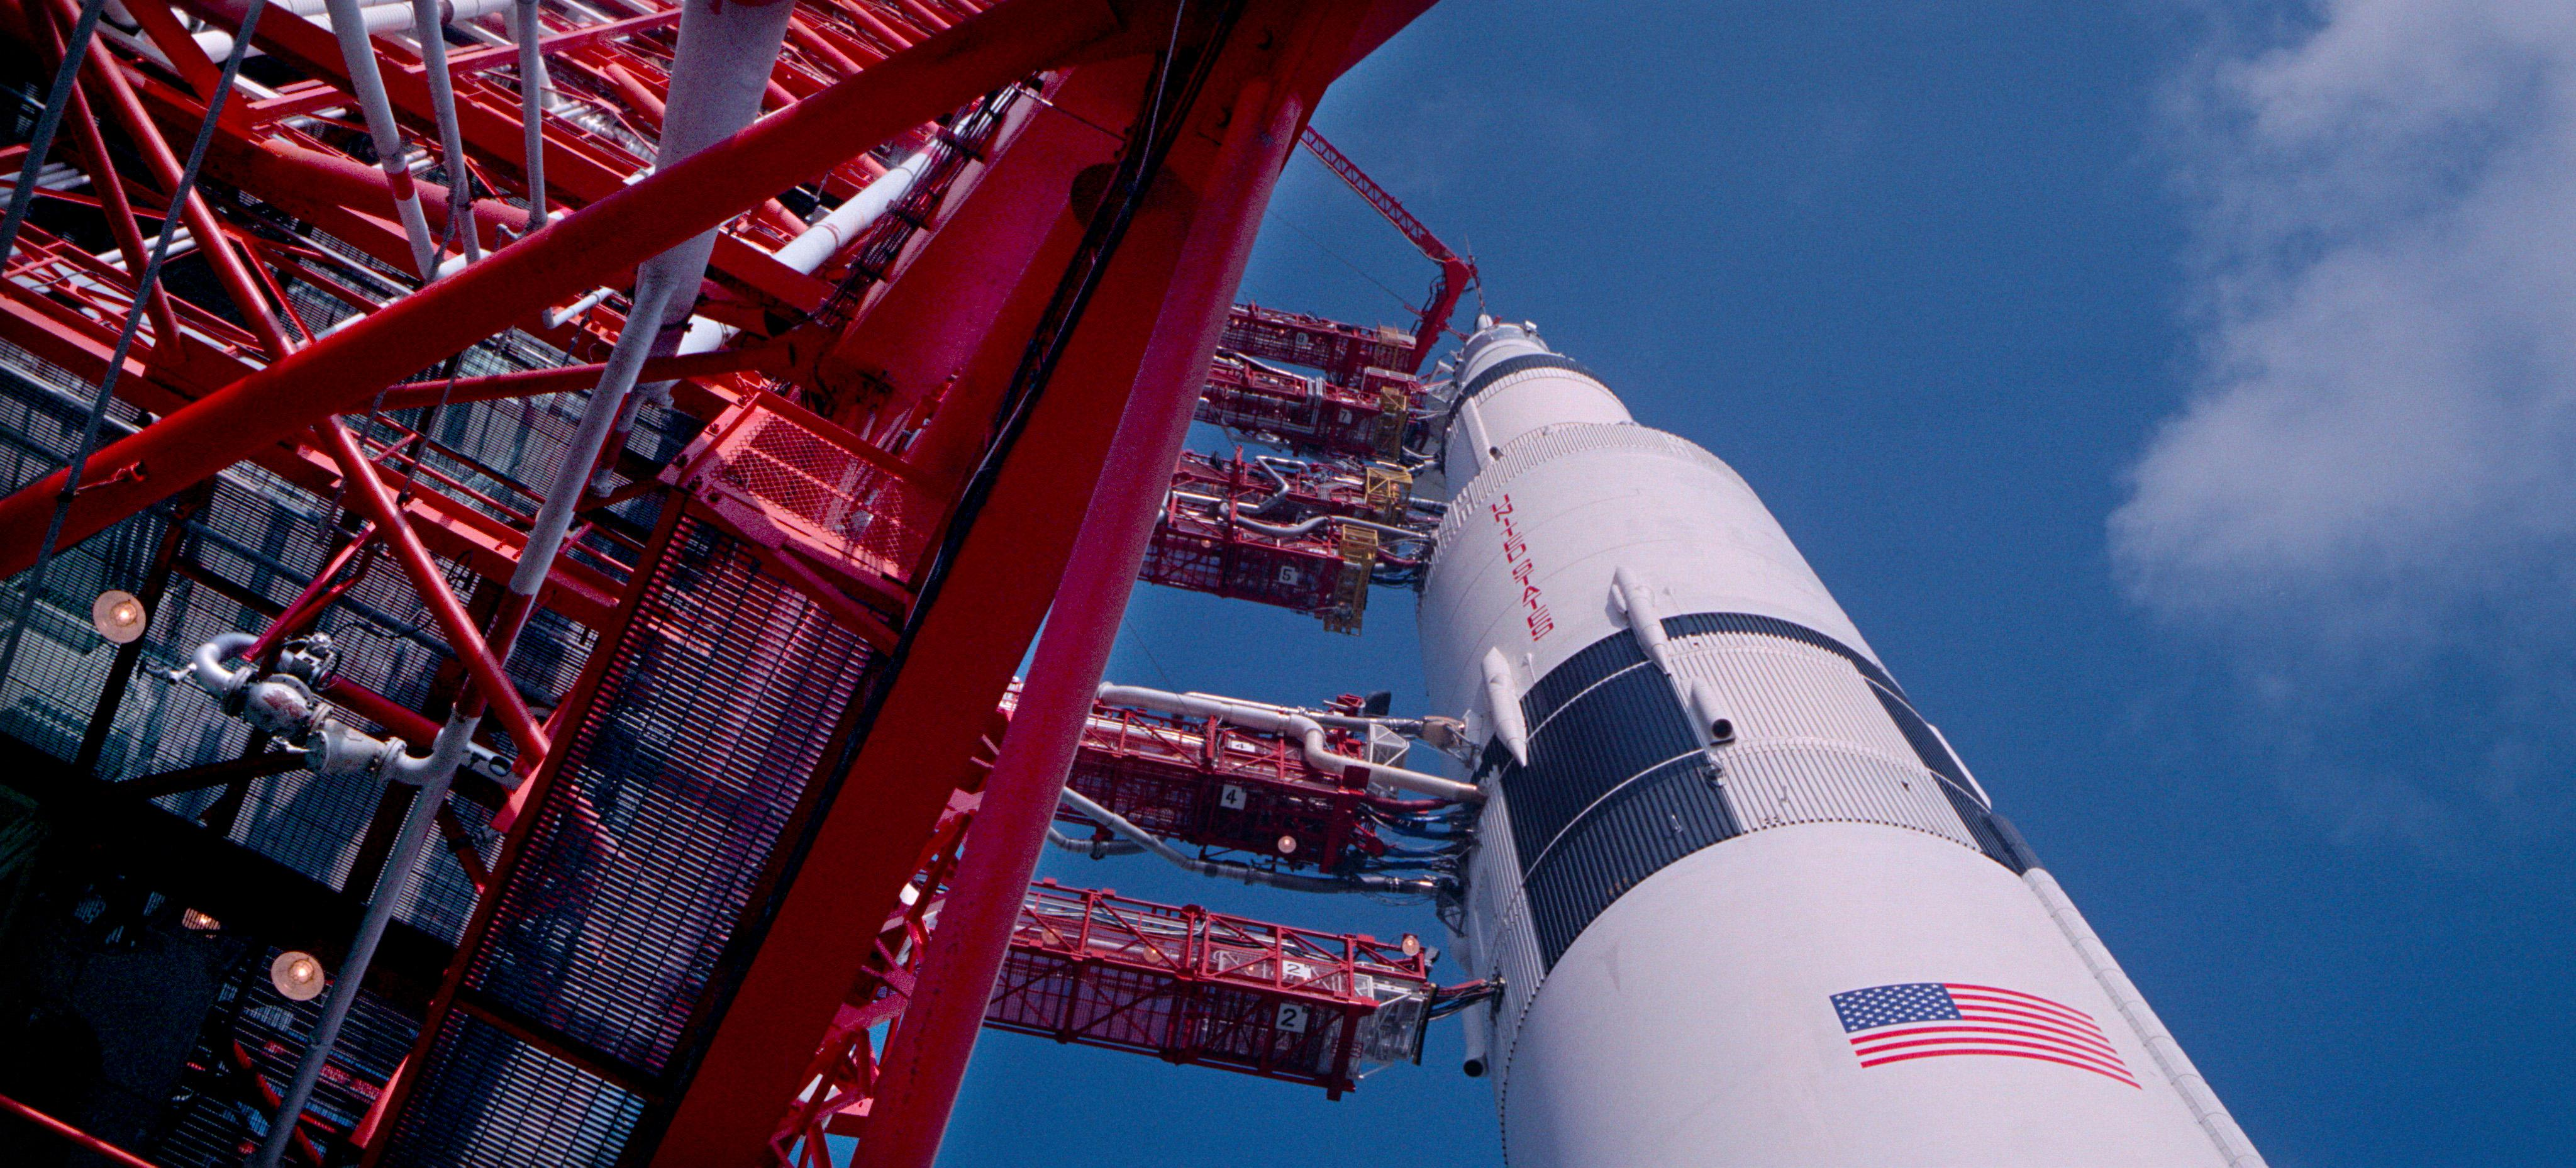 Apollo 15 Saturn V Rocket